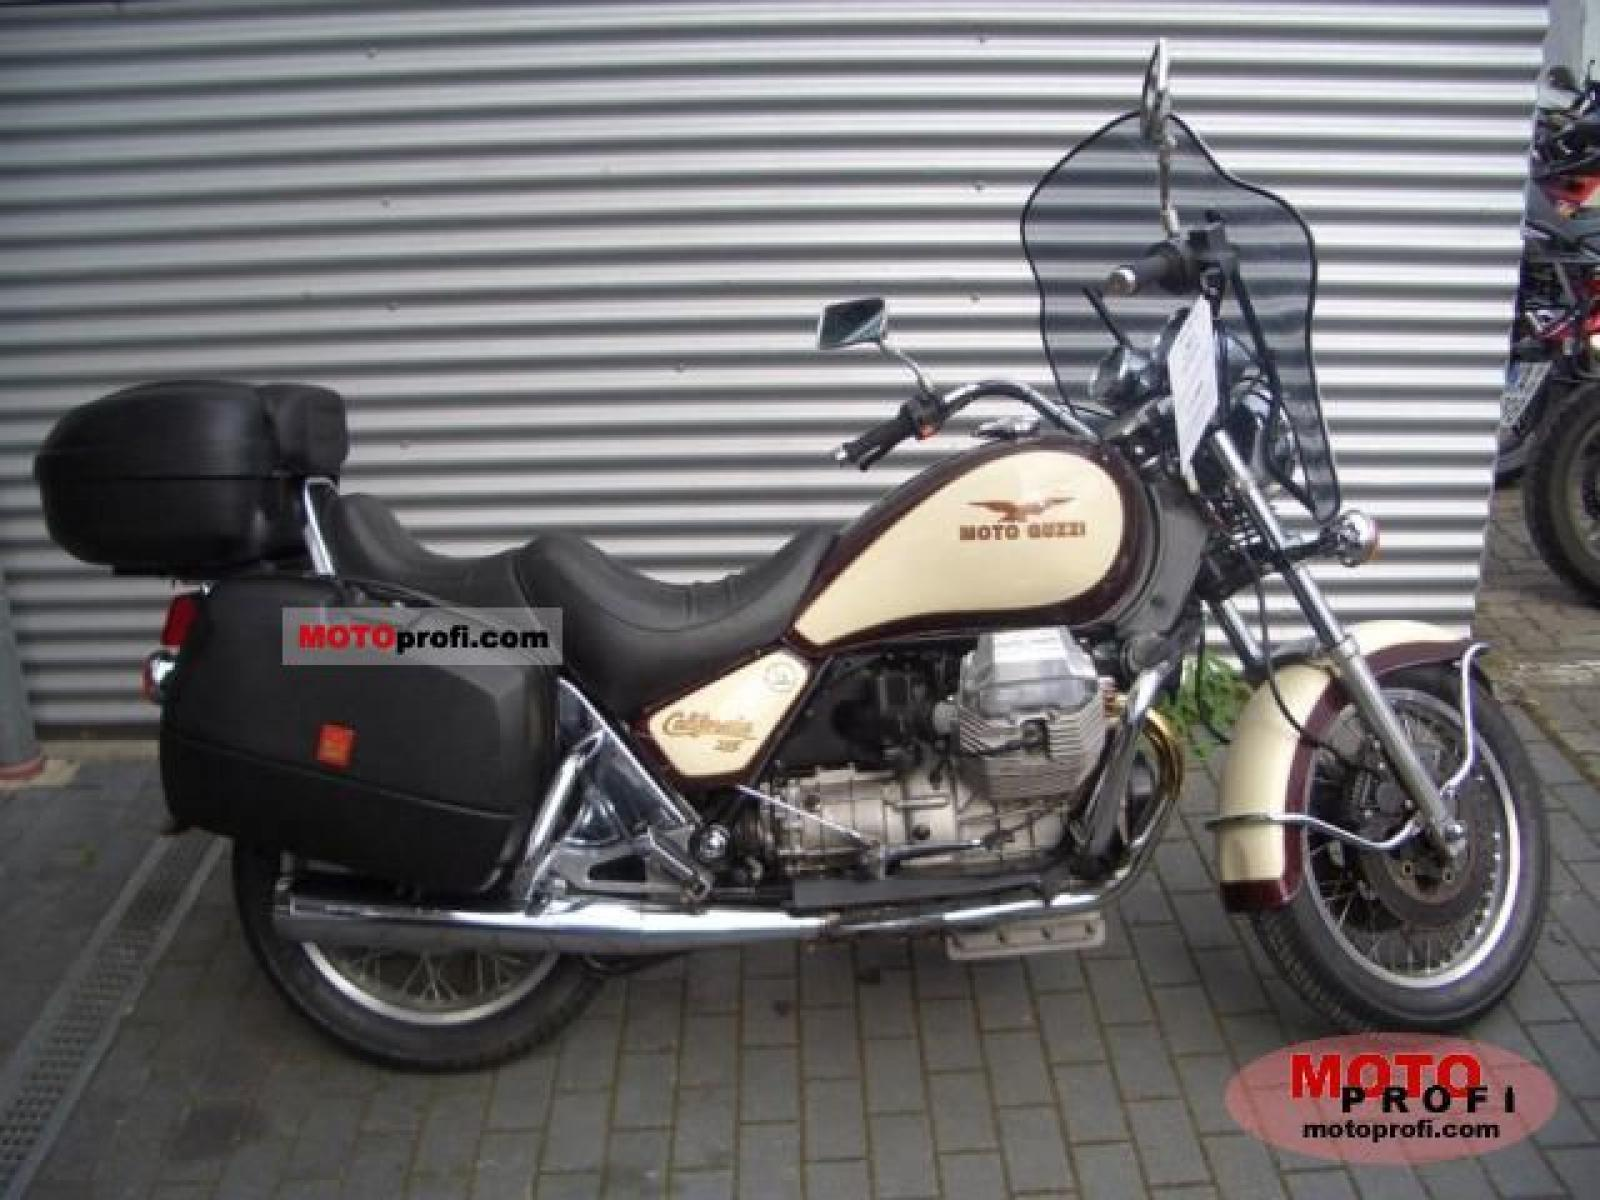 Moto Guzzi California III 1993 images #108662